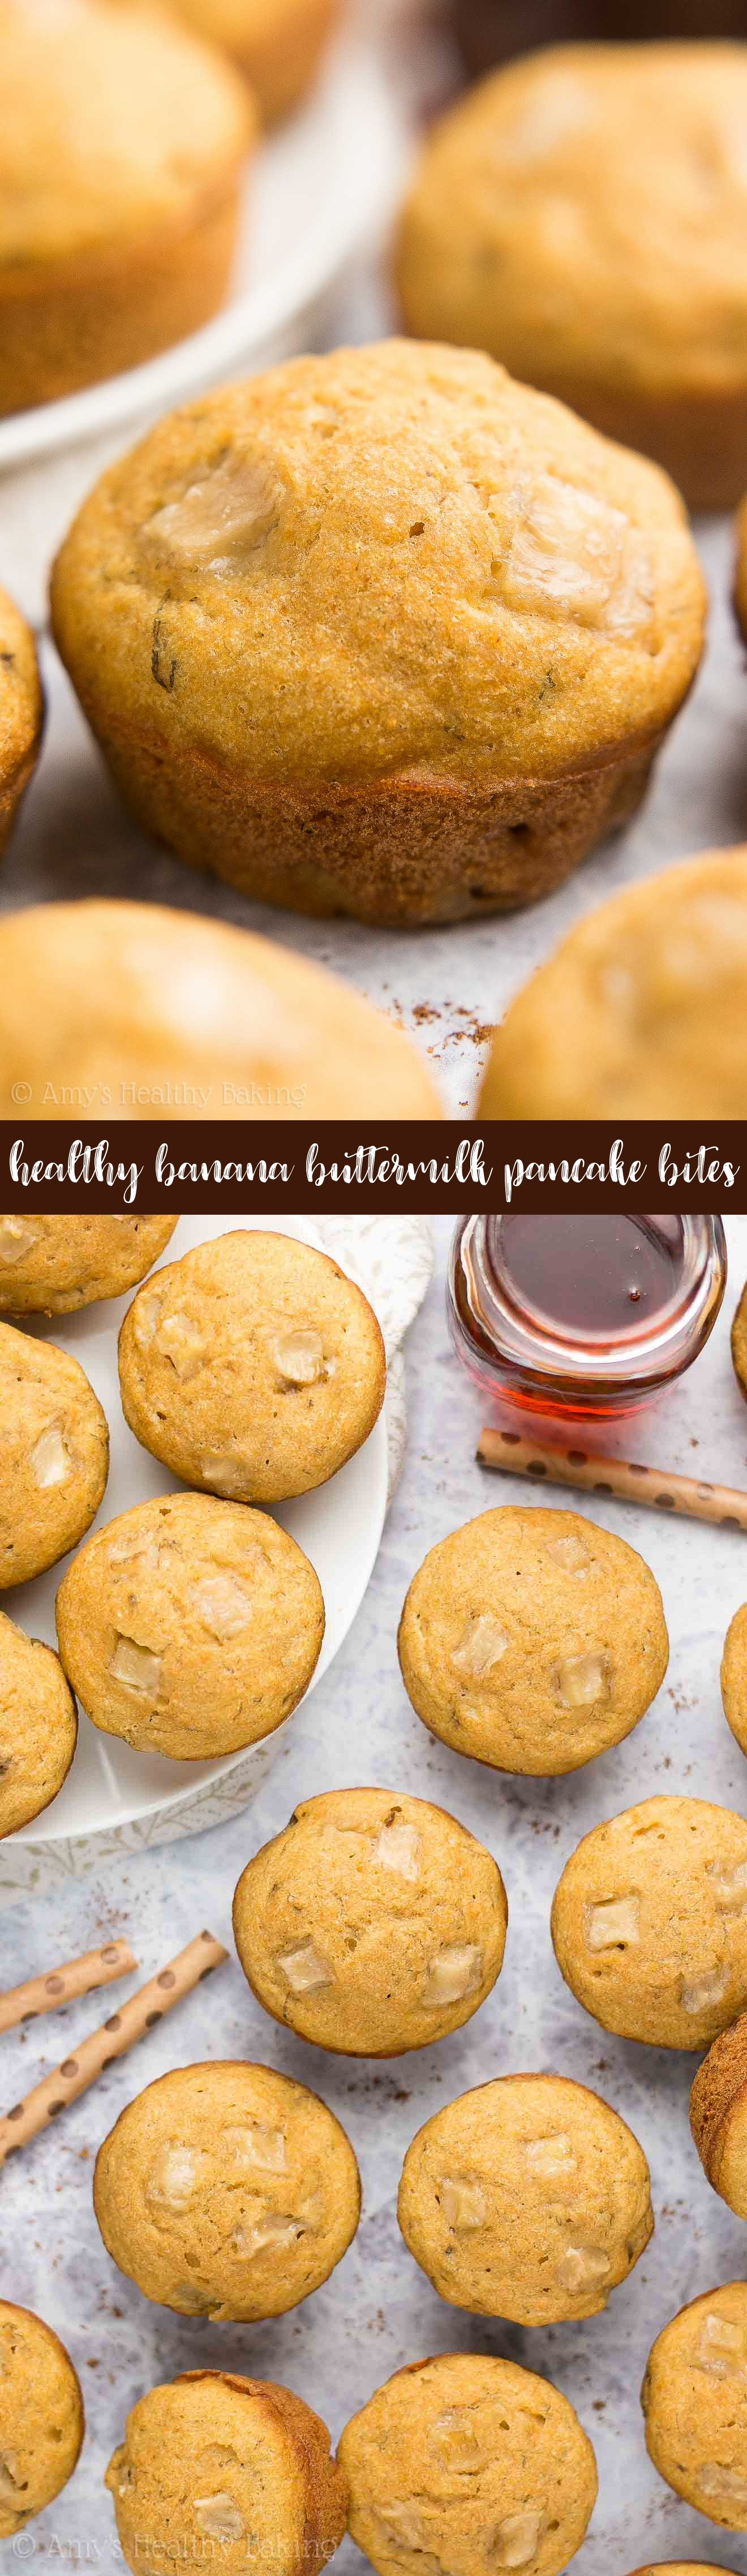 {HEALTHY!} Banana Buttermilk Pancake Bites Recipe! These taste AMAZING & are only 31 calories! SO easy to make, totally kid-friendly & perfect for grab-and-go breakfasts!